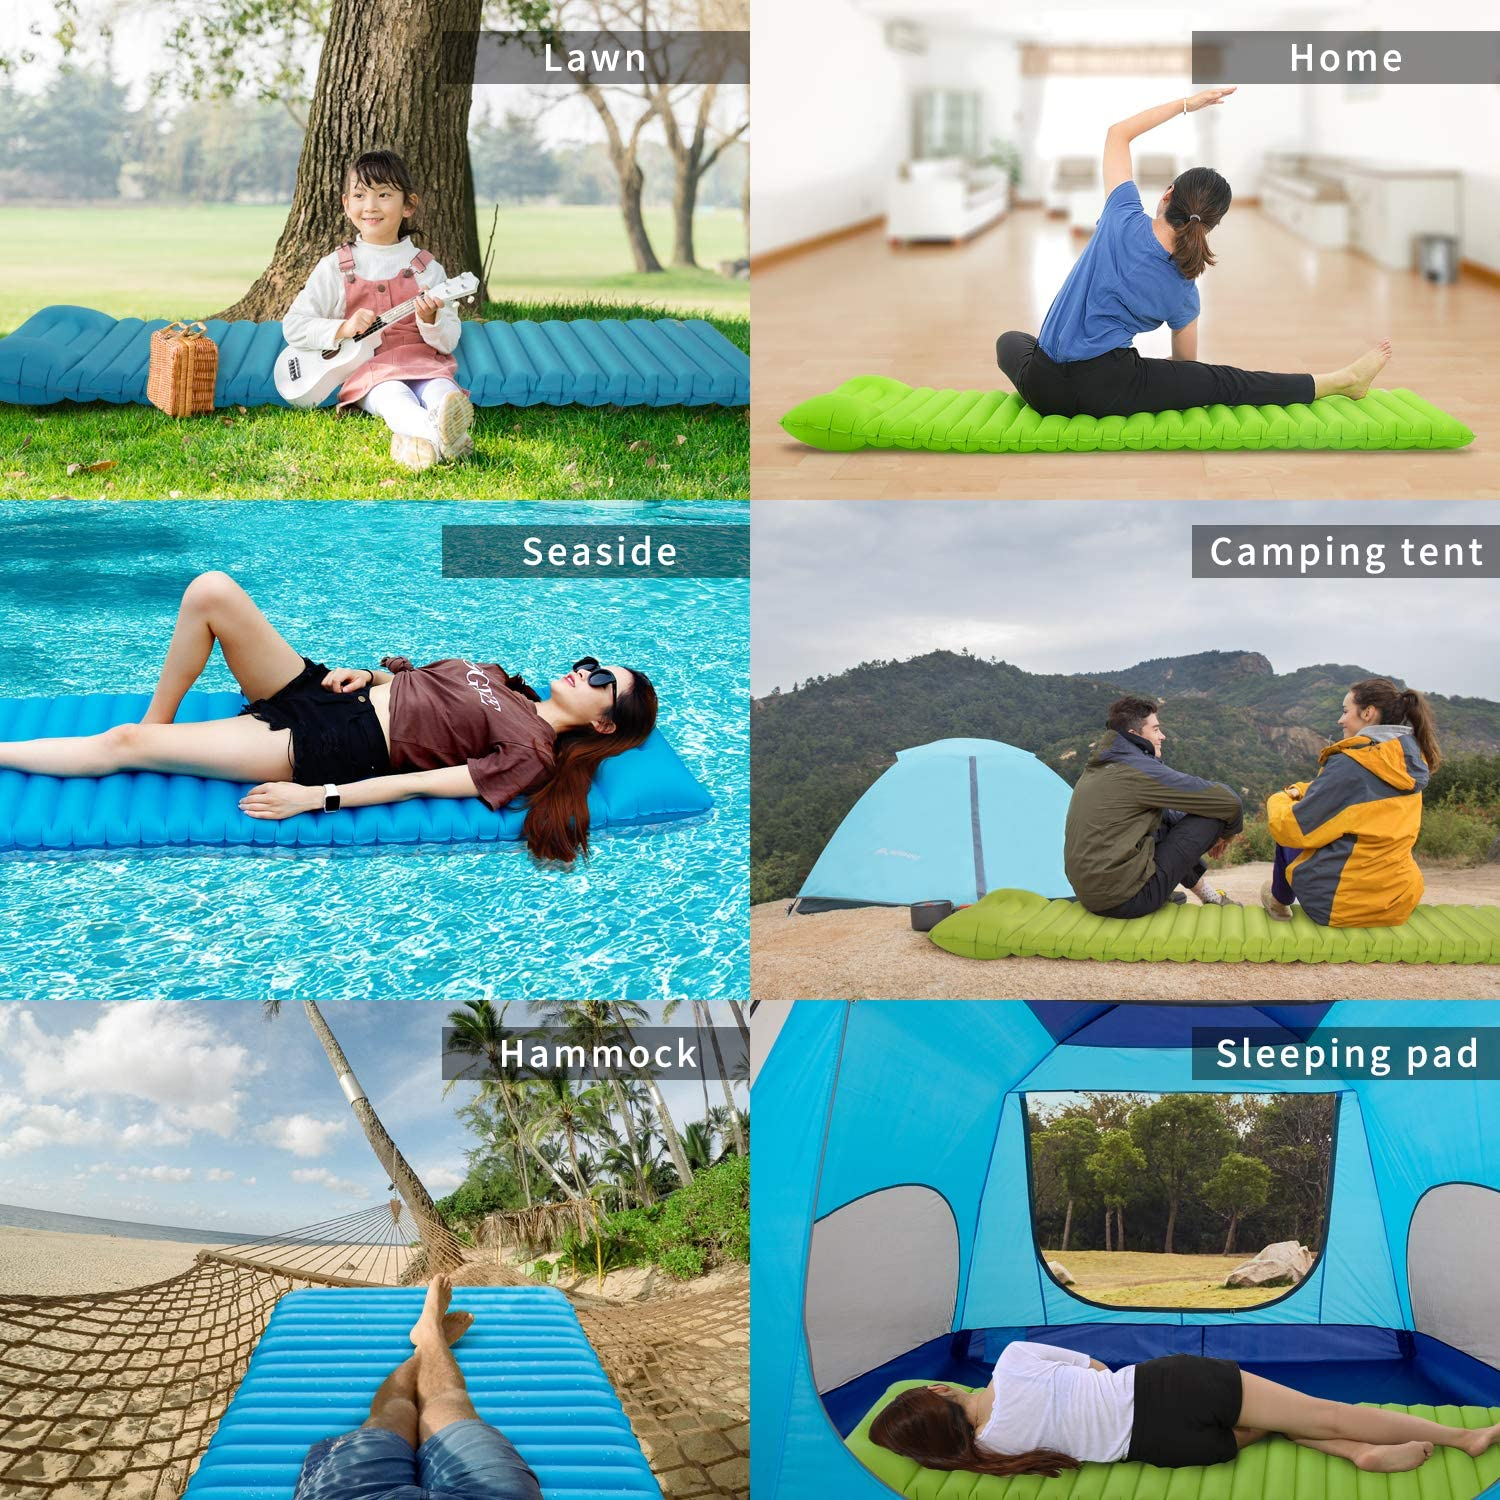 BISINNA Ultralight Inflatable Camping Sleeping Pad Mat with Pillow and Inflat Dry Bag for Camping Backpacking Traveling and Hiking Folding Compact Lightweight Portable Outdoor Hiking Air Mattress